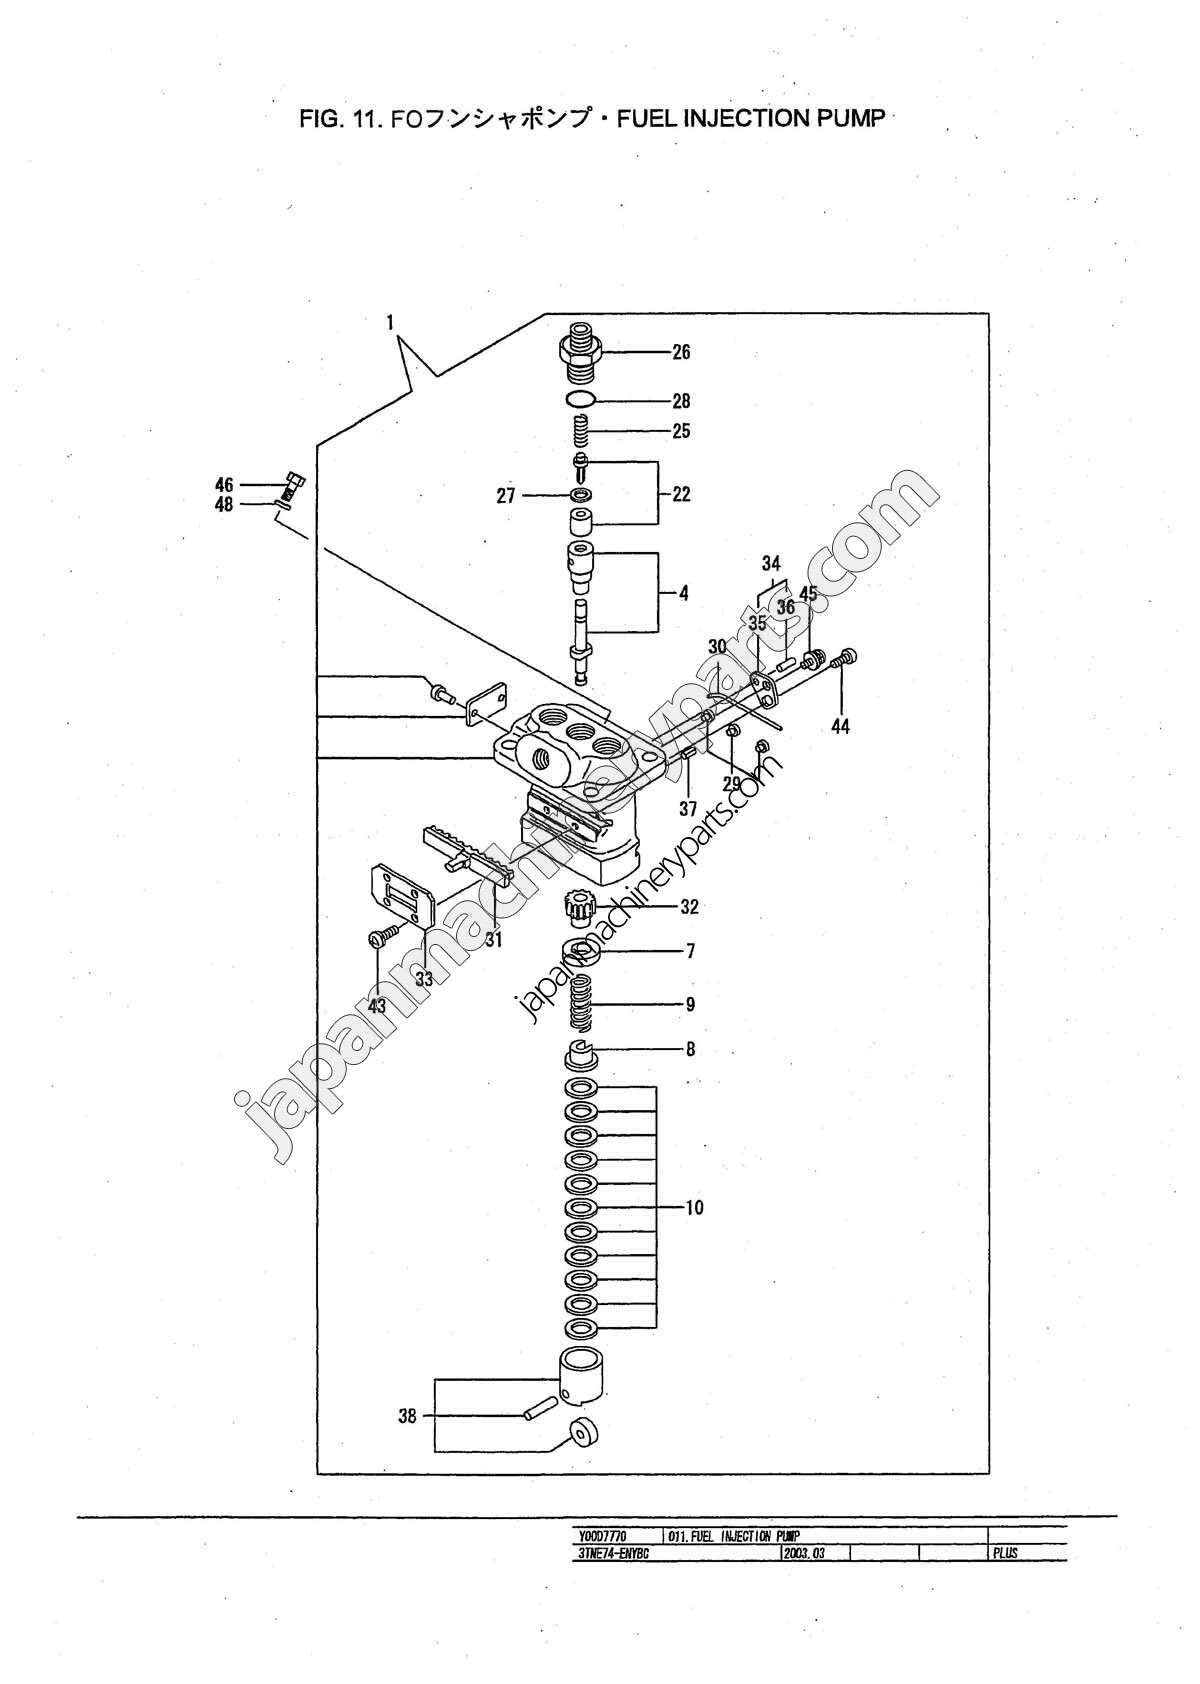 Sel Kiki Injection Pump Diagram Wiring Wiring Diagram